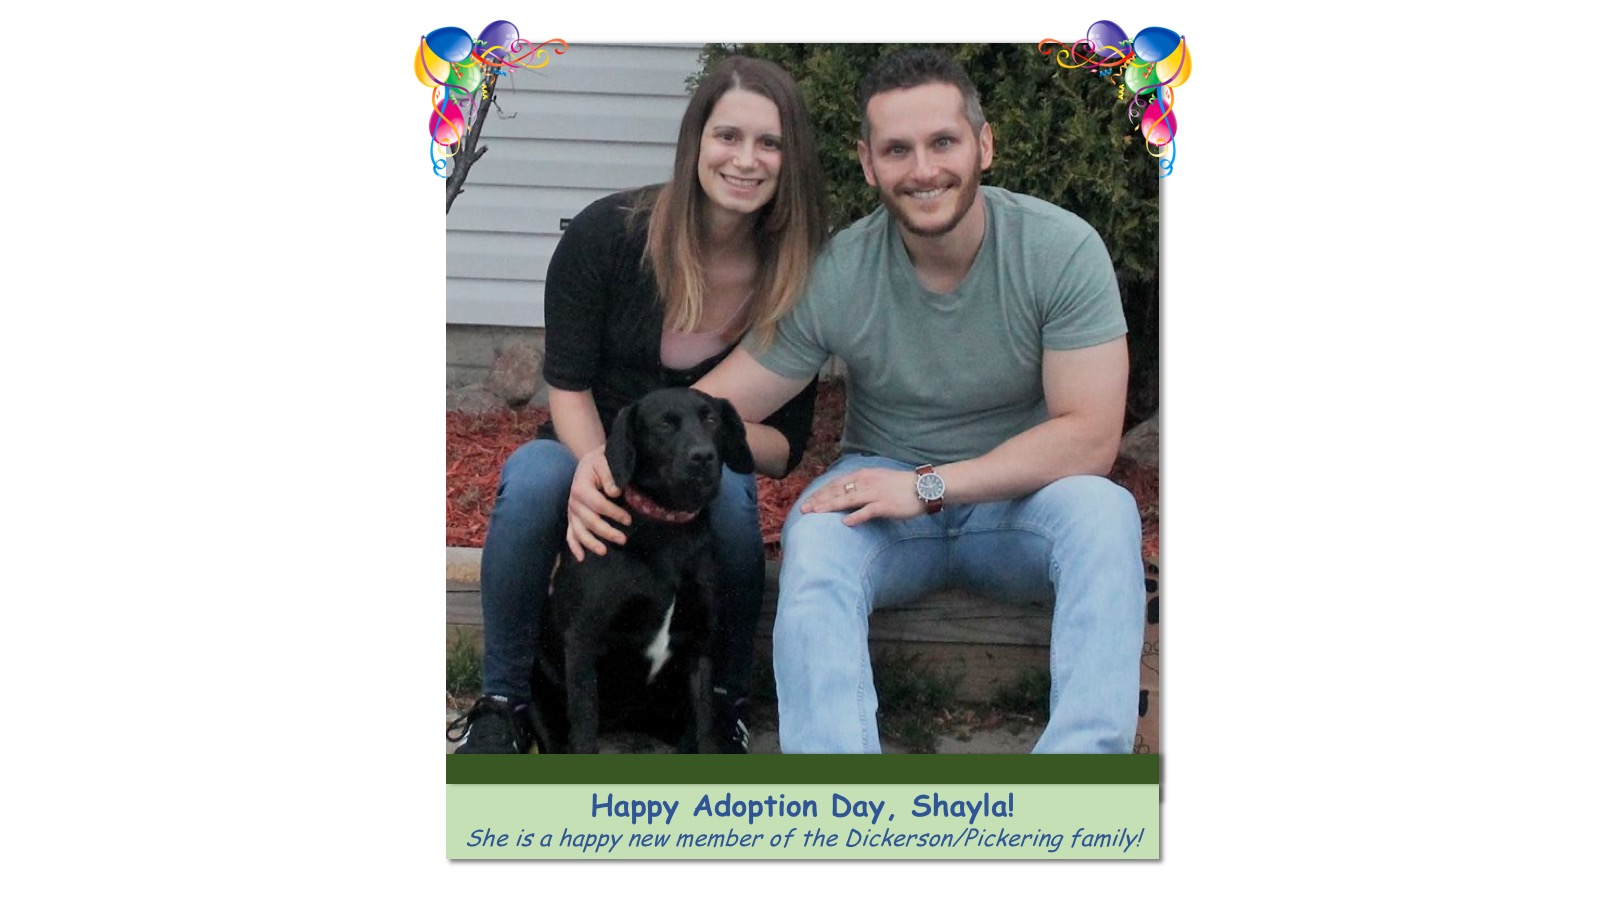 Shayla_Adoption_Photo84274.jpg